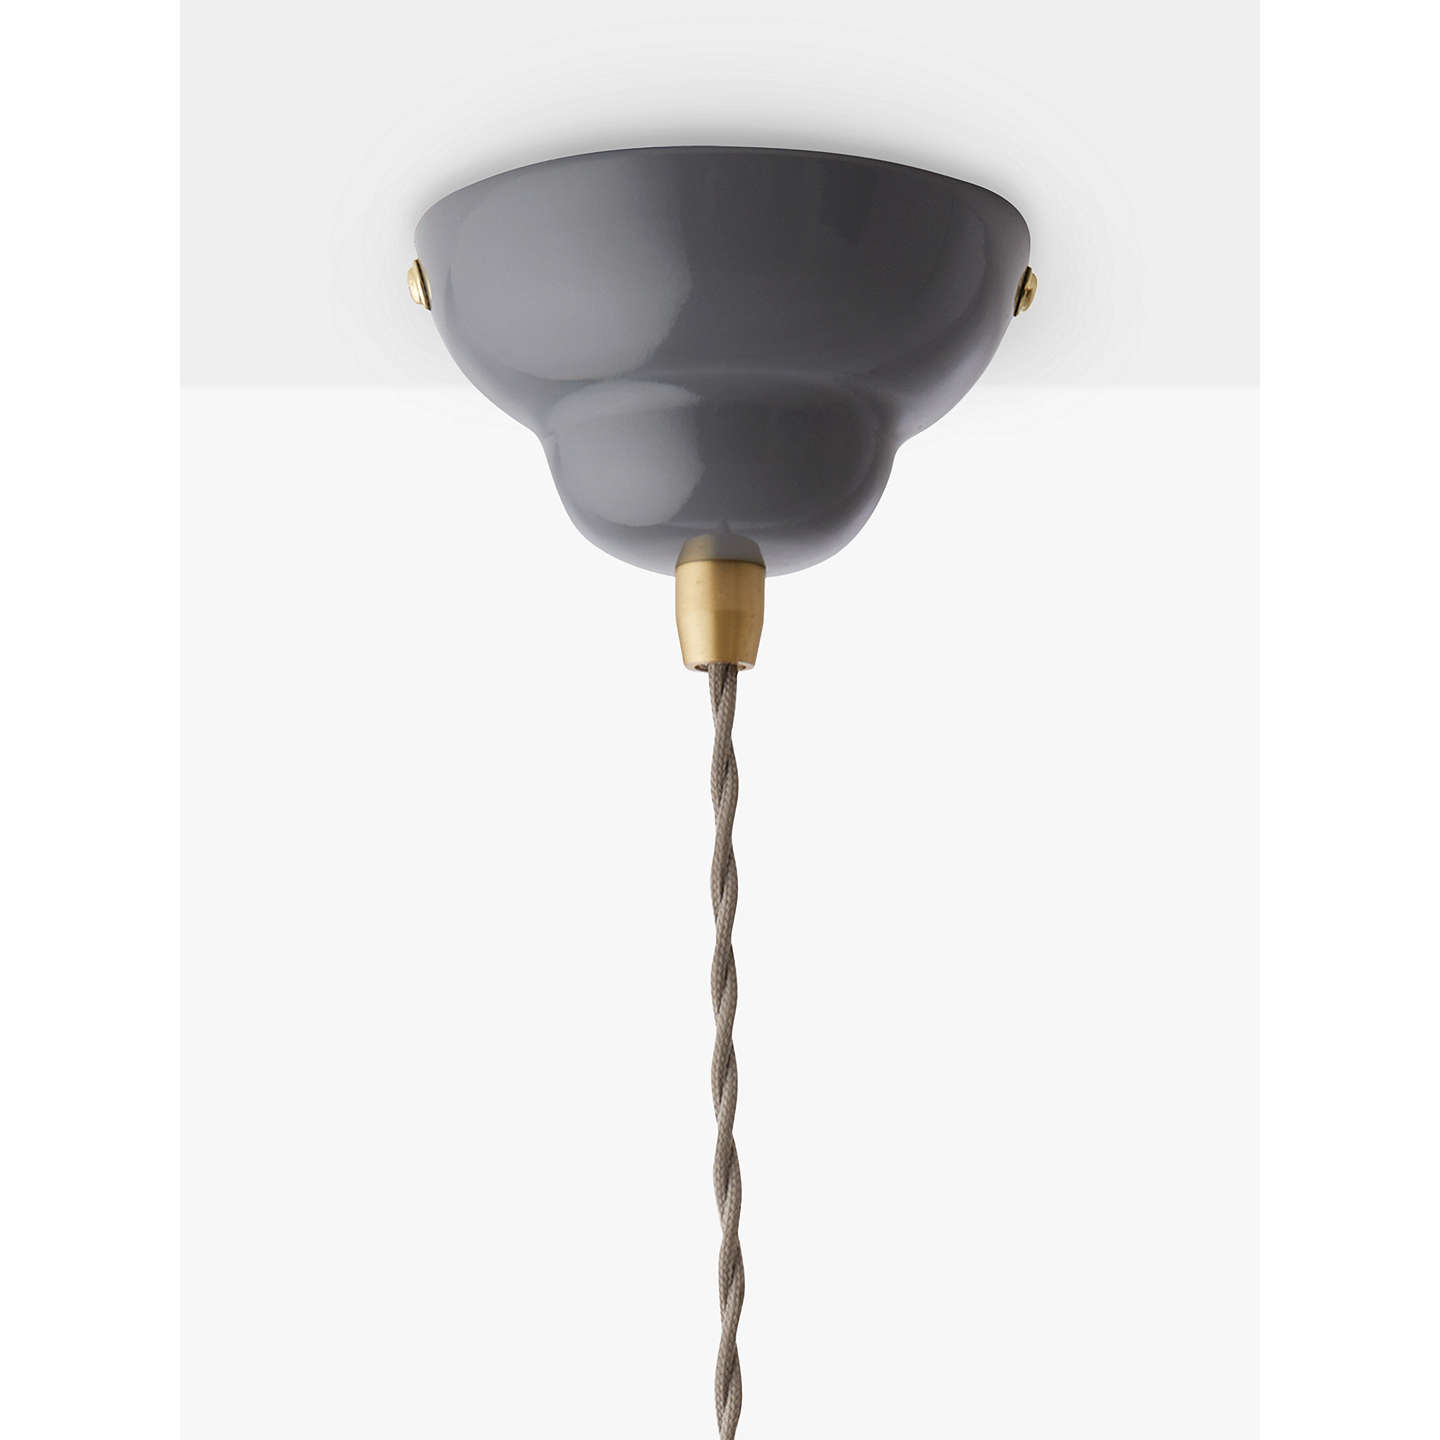 invt uk laura view sphere resp chandeliers ceiling brass pendant light lights ashley antique odiham large